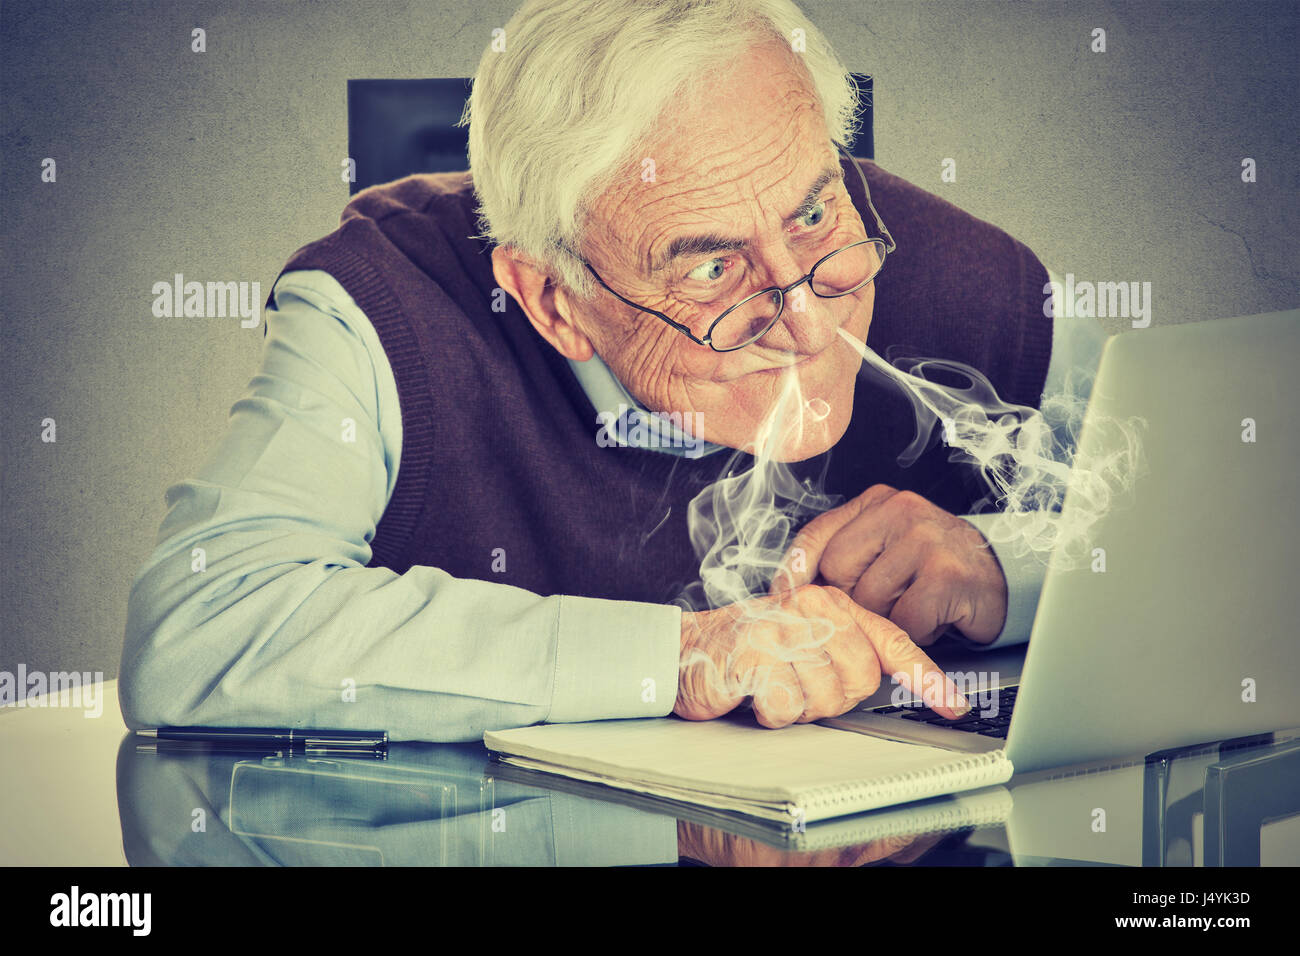 Stressed elderly man using computer blowing steam from nose frustrated sitting at table isolated on gray wall background. - Stock Image